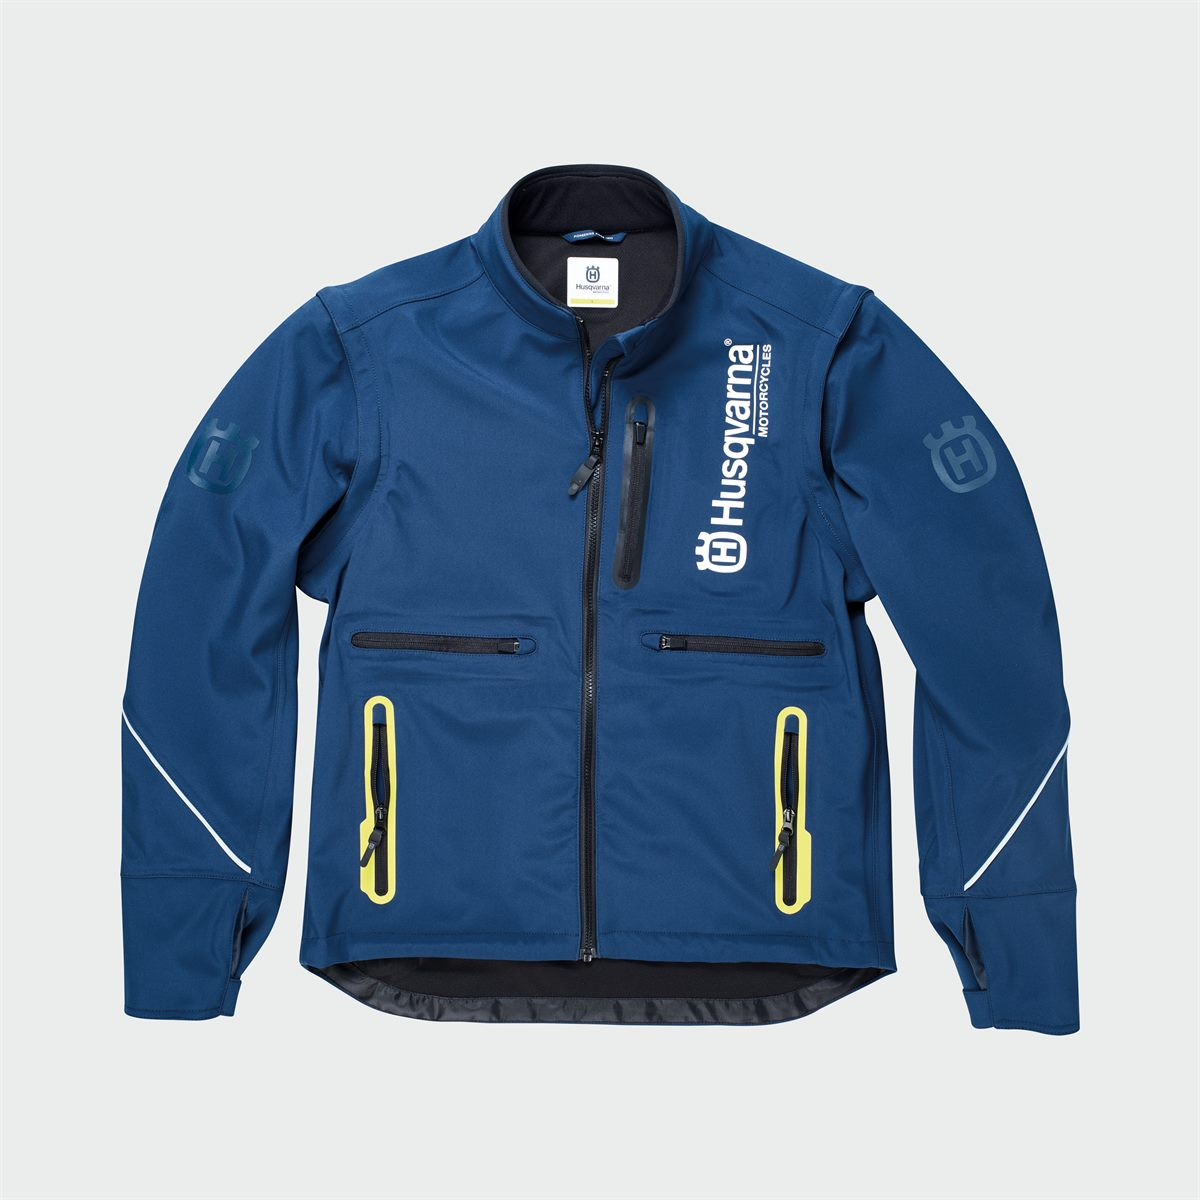 Husqvarna Motorcycles 2020 Functional Clothing Offroad Collection - GOTLAND JACKET